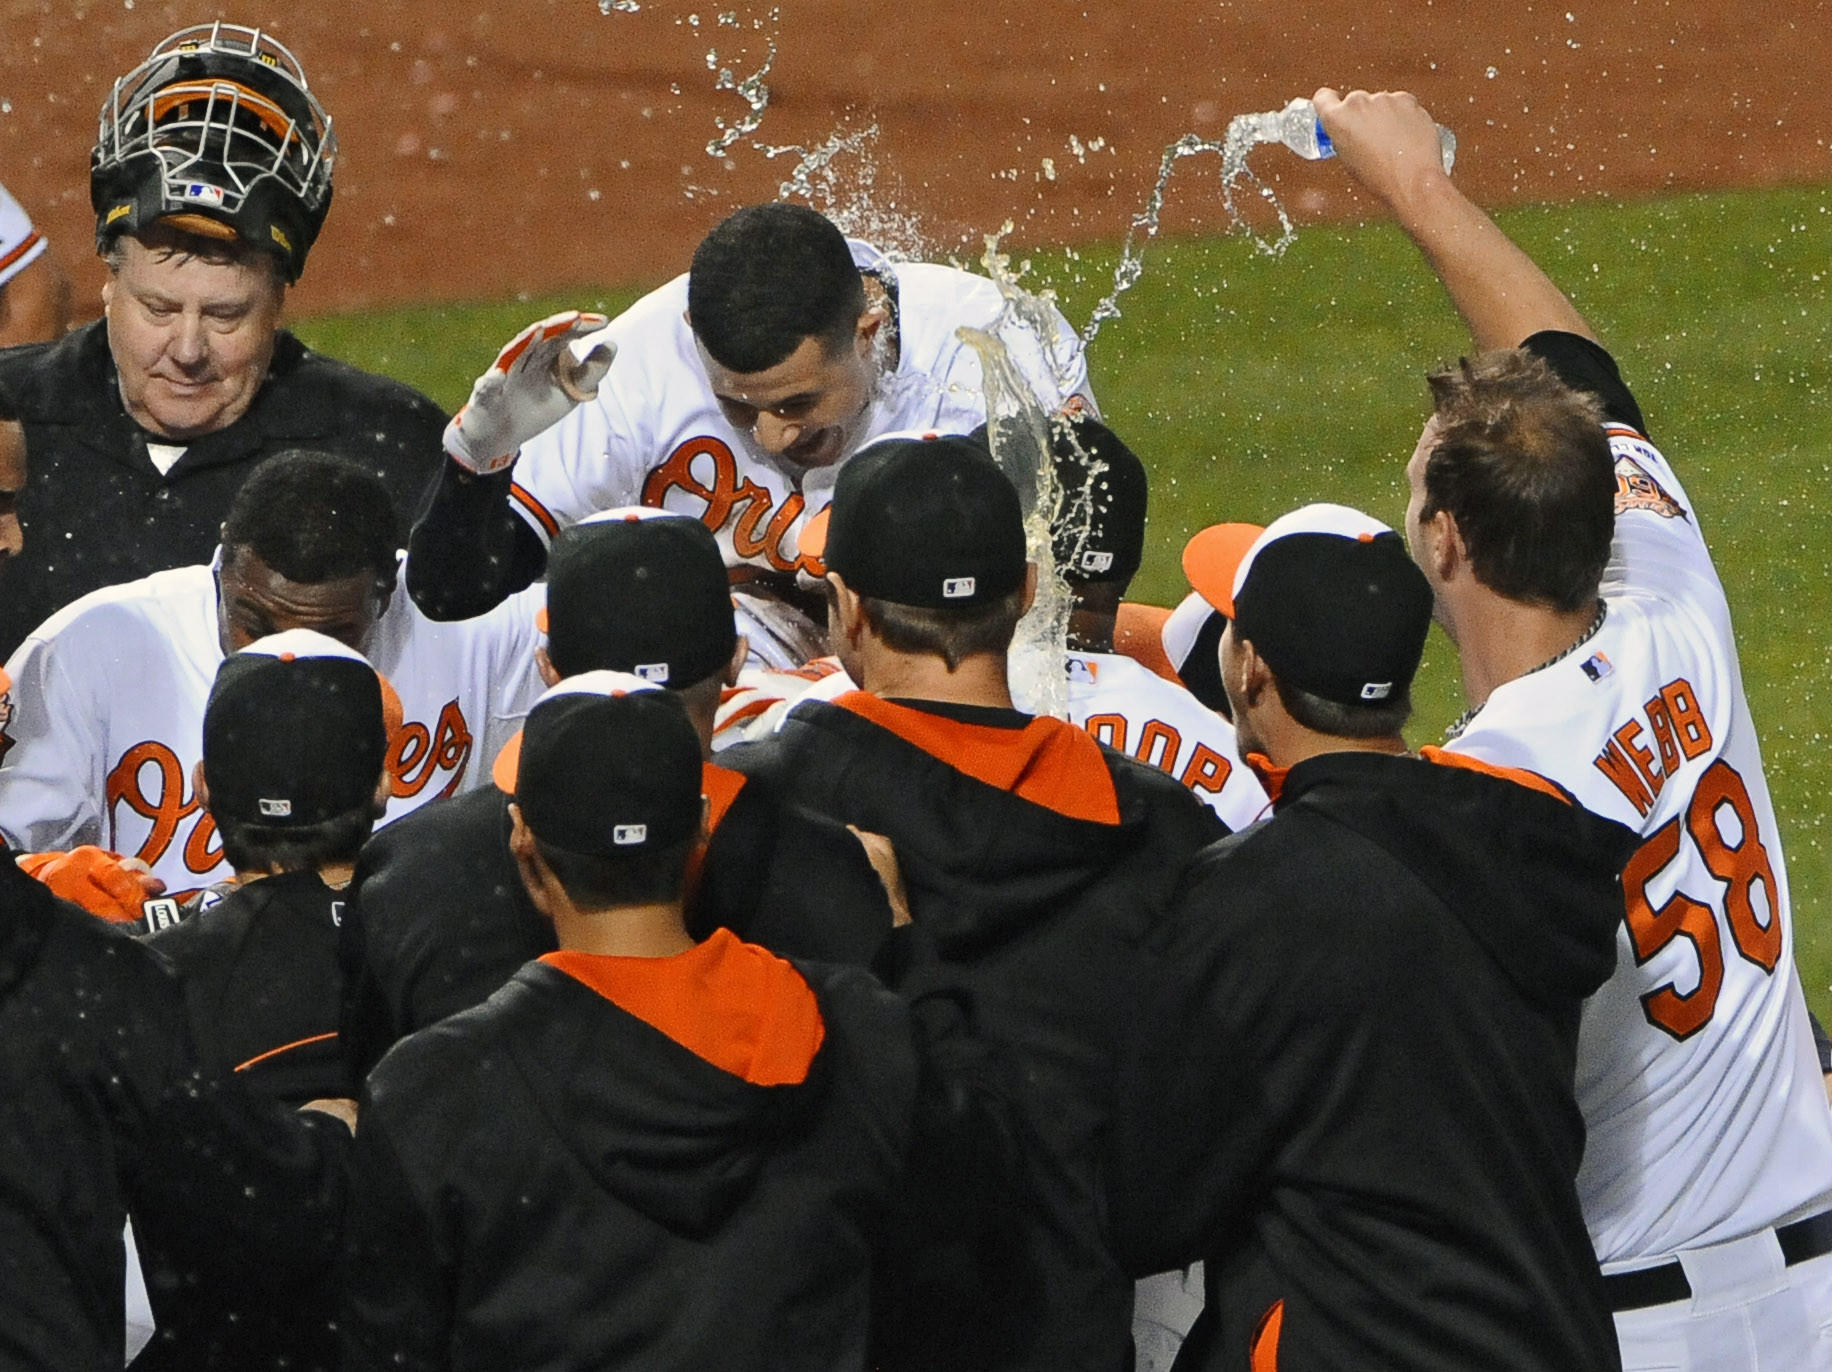 Third baseman Manny Machado, top, celebrates with teammates at home plate after hitting a walk-off home run to give the Orioles a 7-6 victory in 12 innings over the Los Angeles Angels at Camden Yards.